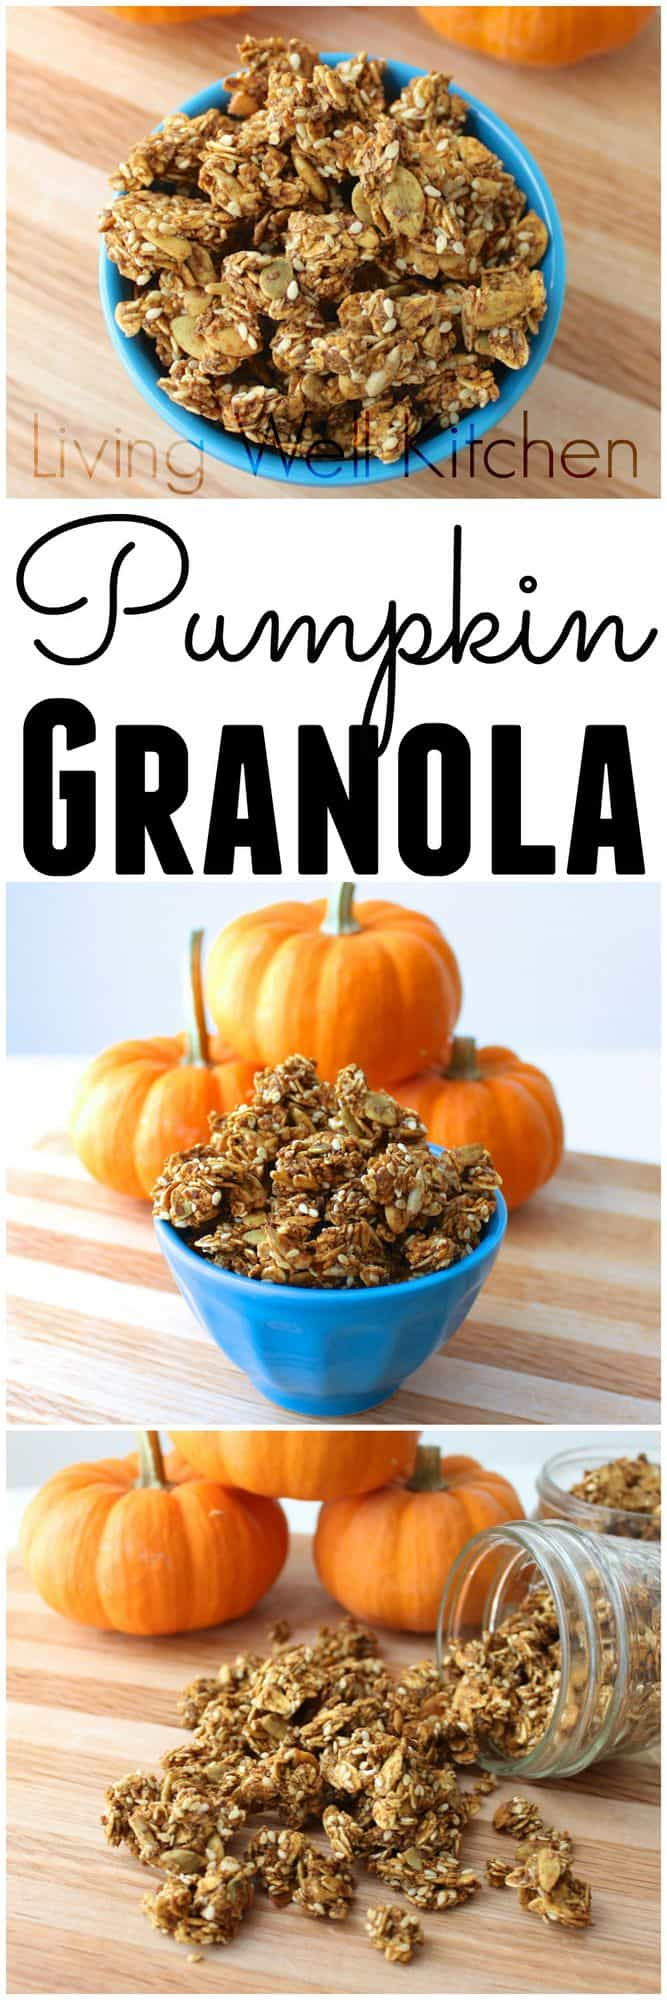 Celebrate the fall & pumpkin season with this delicious granola packed with healthy goodness like fiber, omega-3's, and protein. Pumpkin Granola from Living Well Kitchen @memeinge